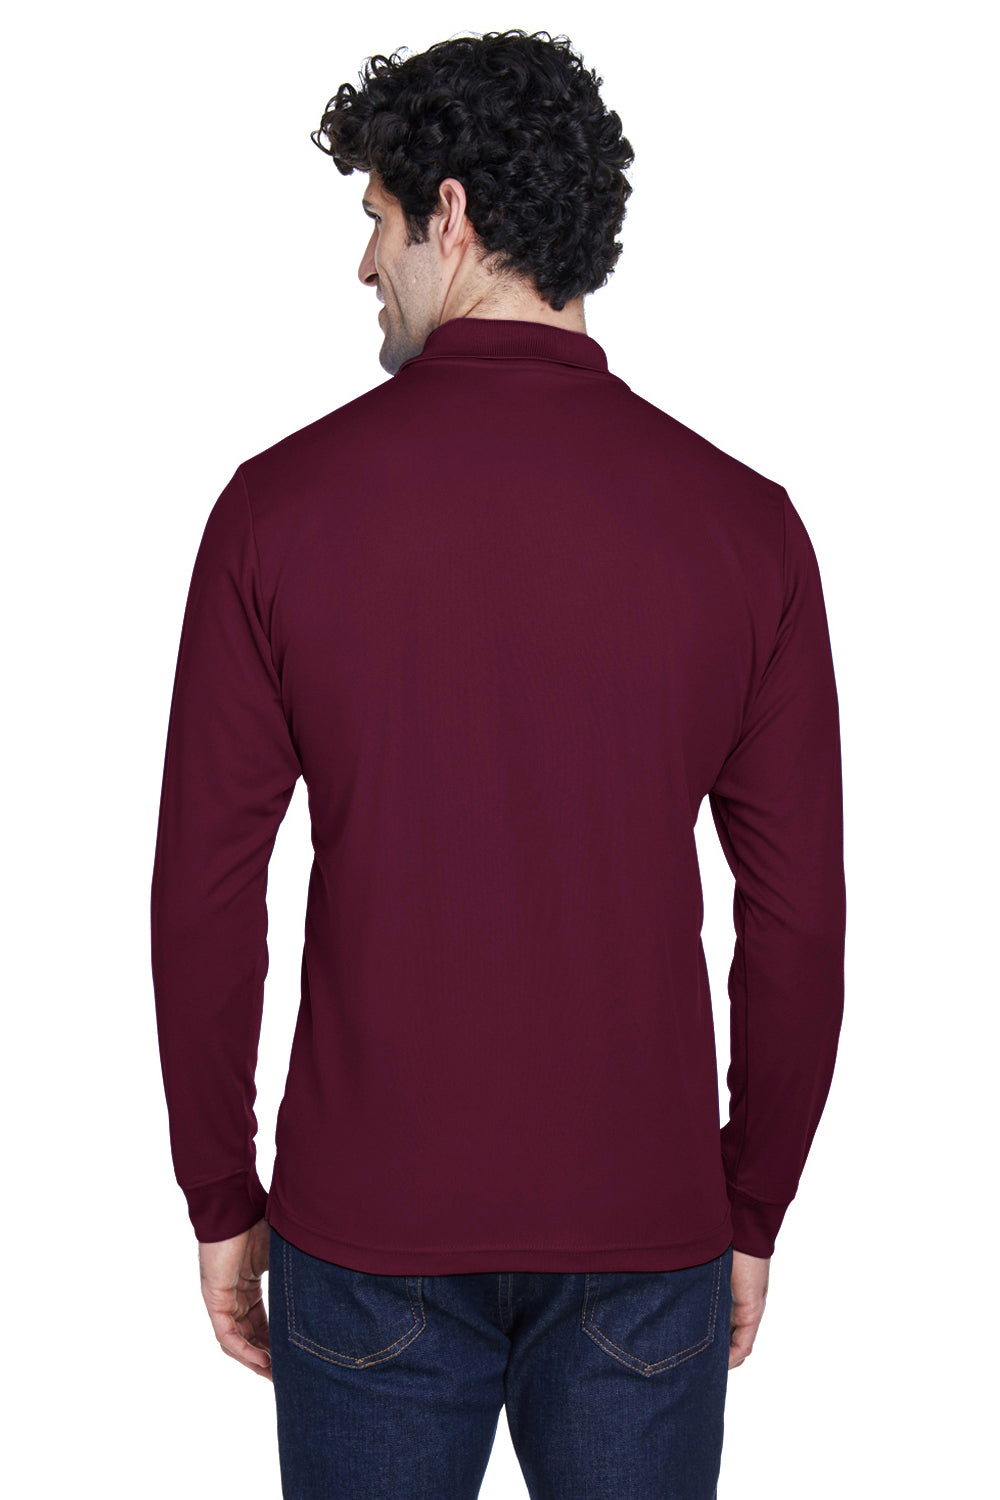 Core 365 88192 Mens Pinnacle Performance Moisture Wicking Long Sleeve Polo Shirt Burgundy Back